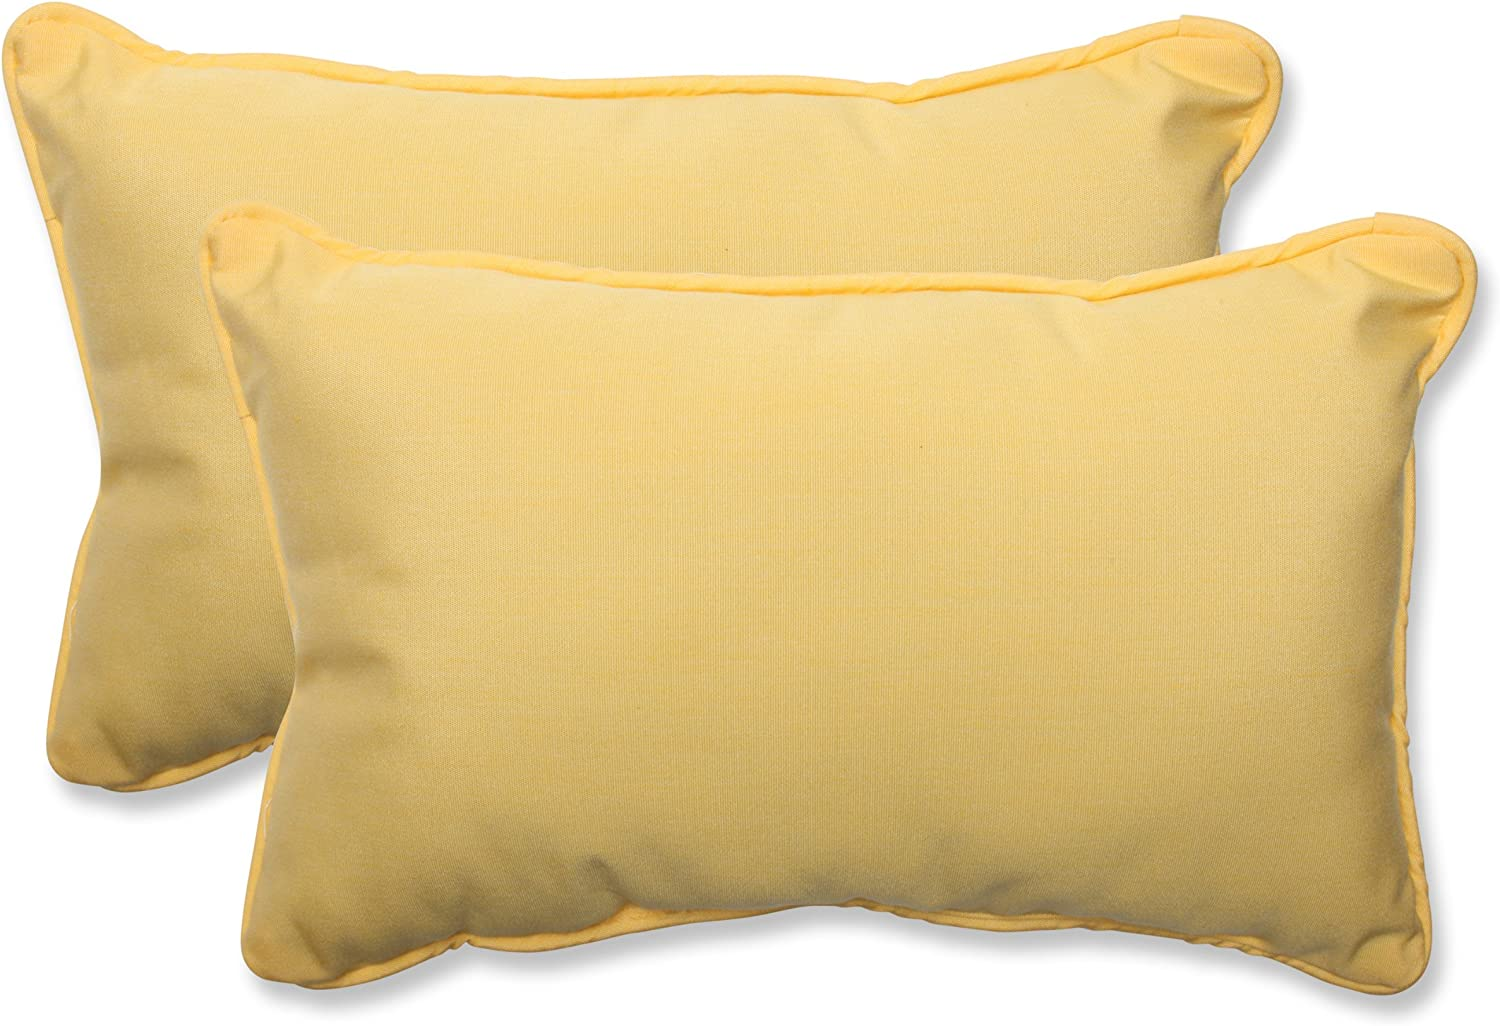 Pillow Perfect Outdoor Indoor Canvas Buttercup Lumbar Pillows 11 5 X 18 5 Yellow 2 Pack Home Kitchen Amazon Com